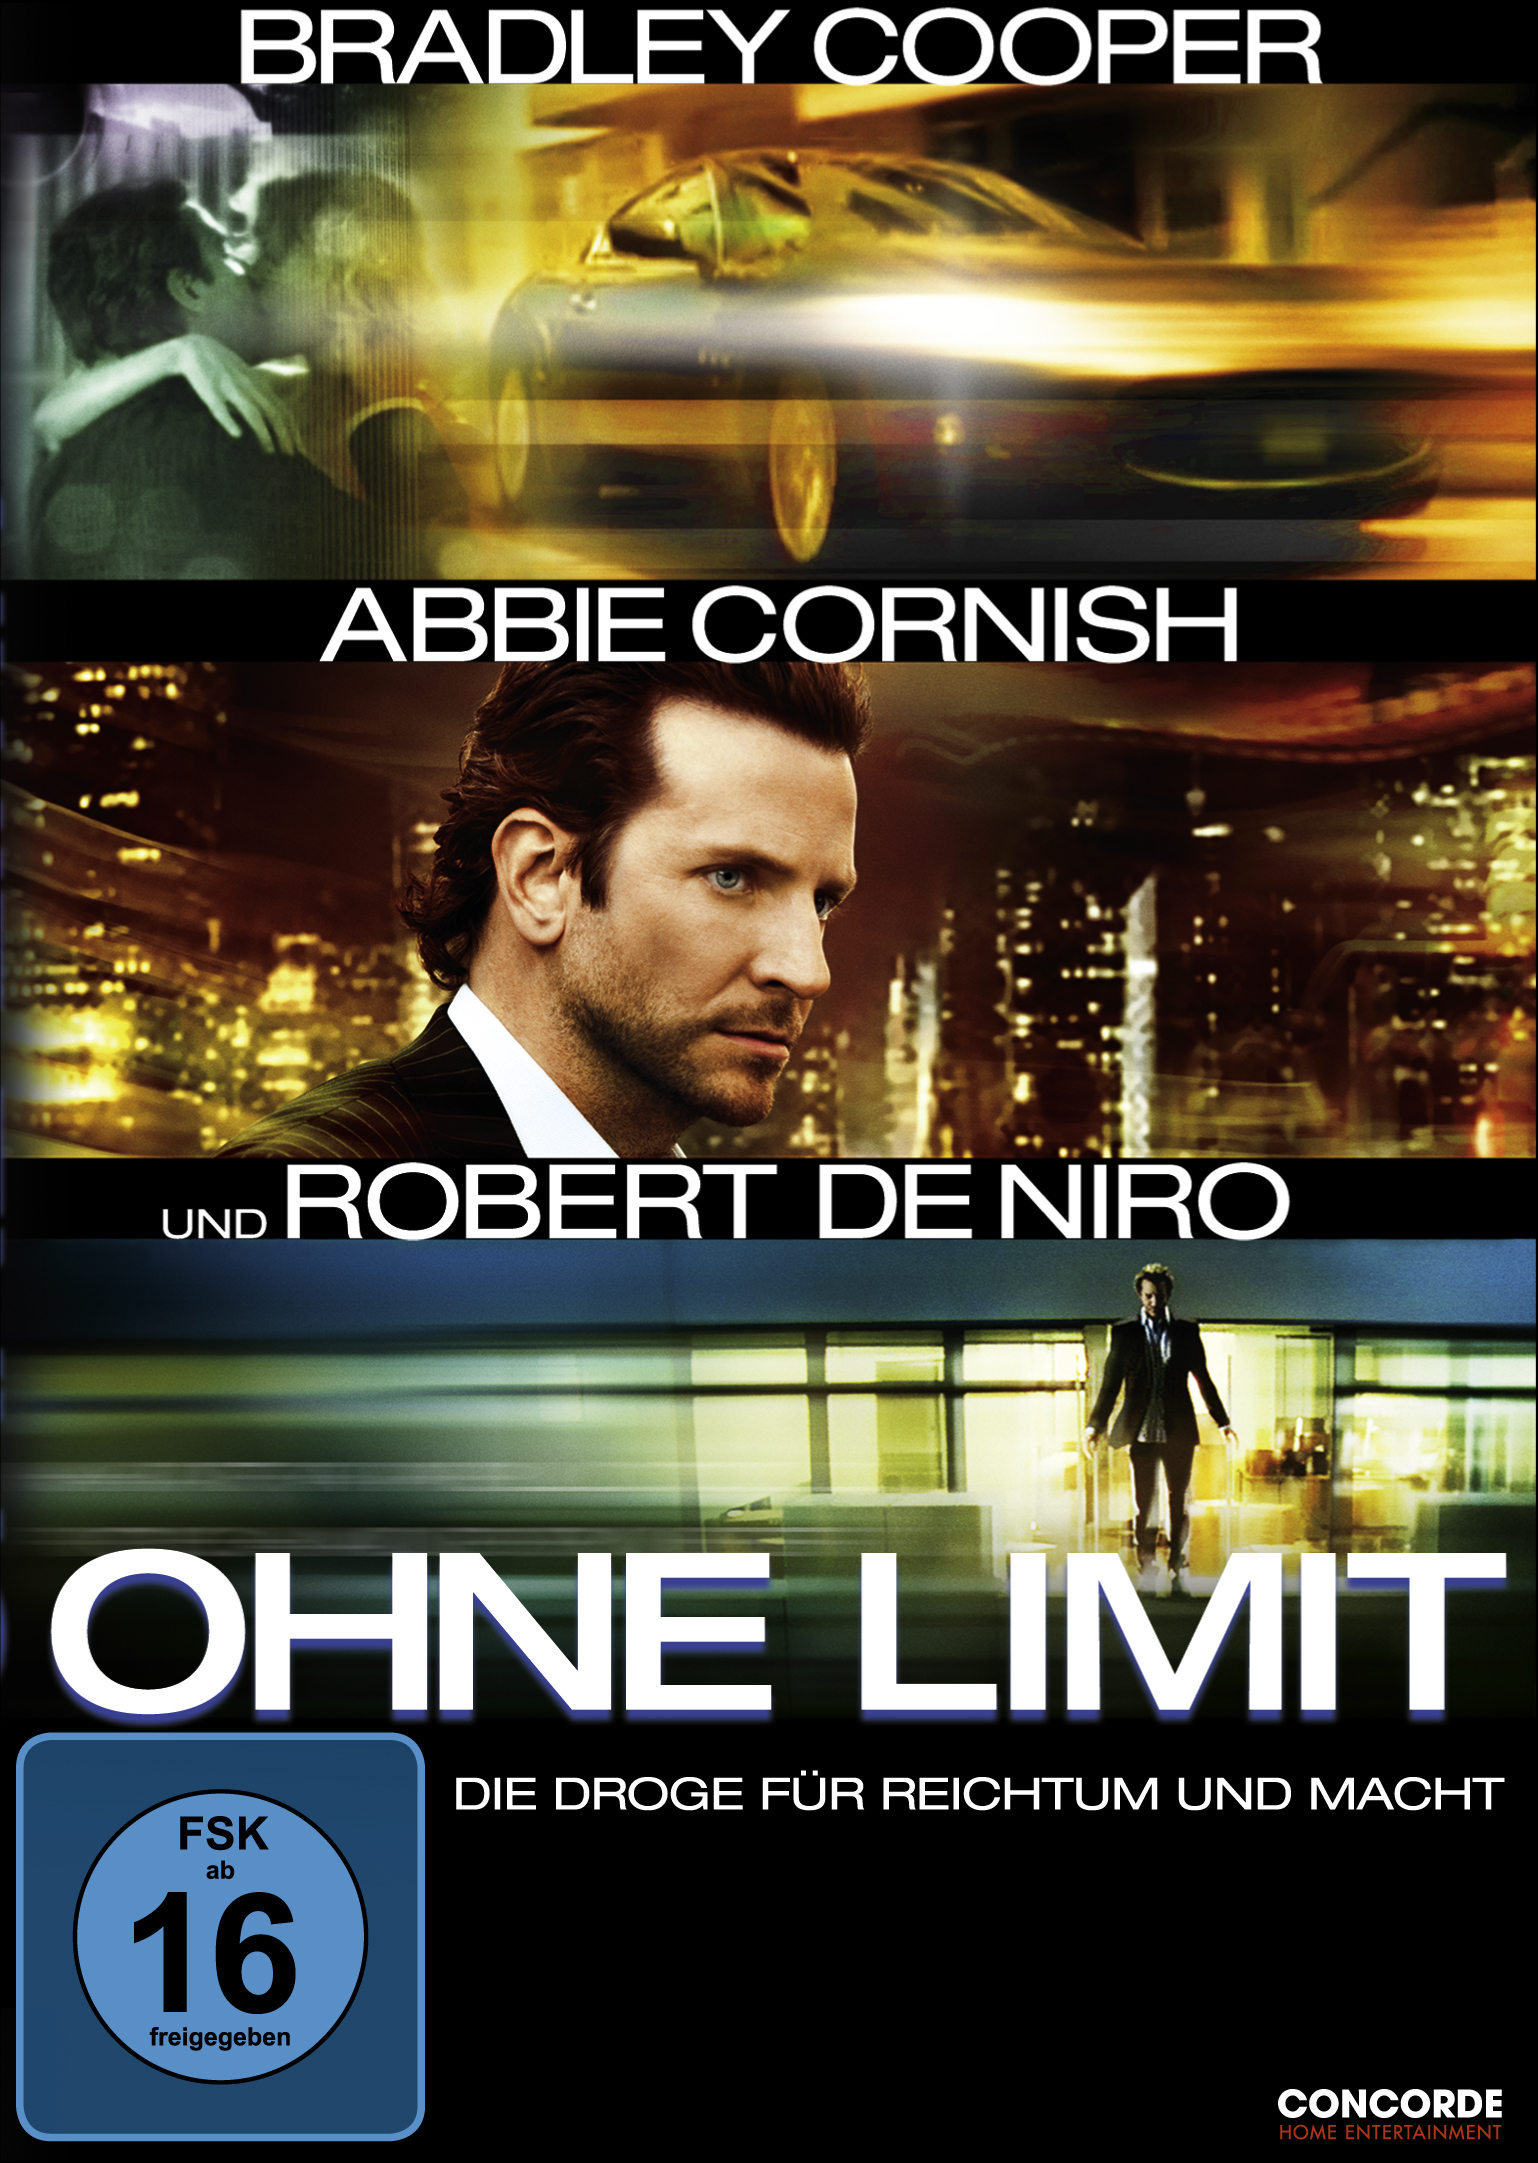 Ohne Limit | Film-Reze... Bradley Cooper News